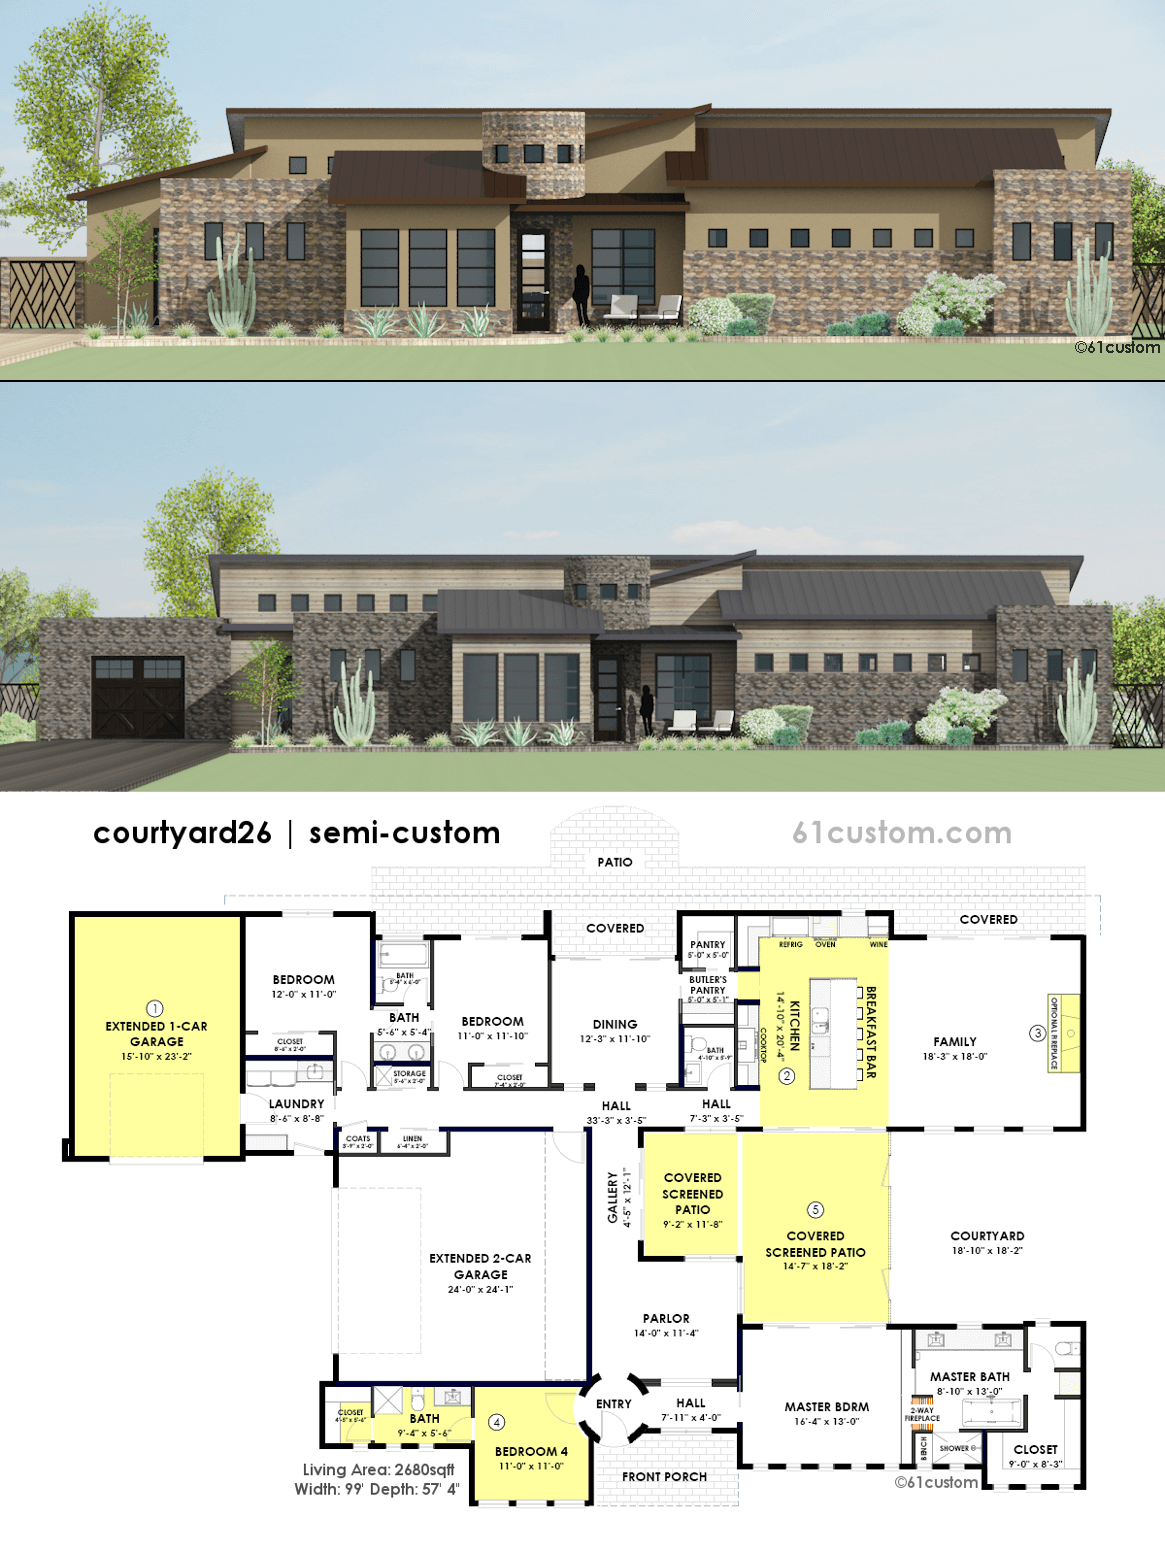 Contemporary side courtyard house plan 61custom Modern home building plans